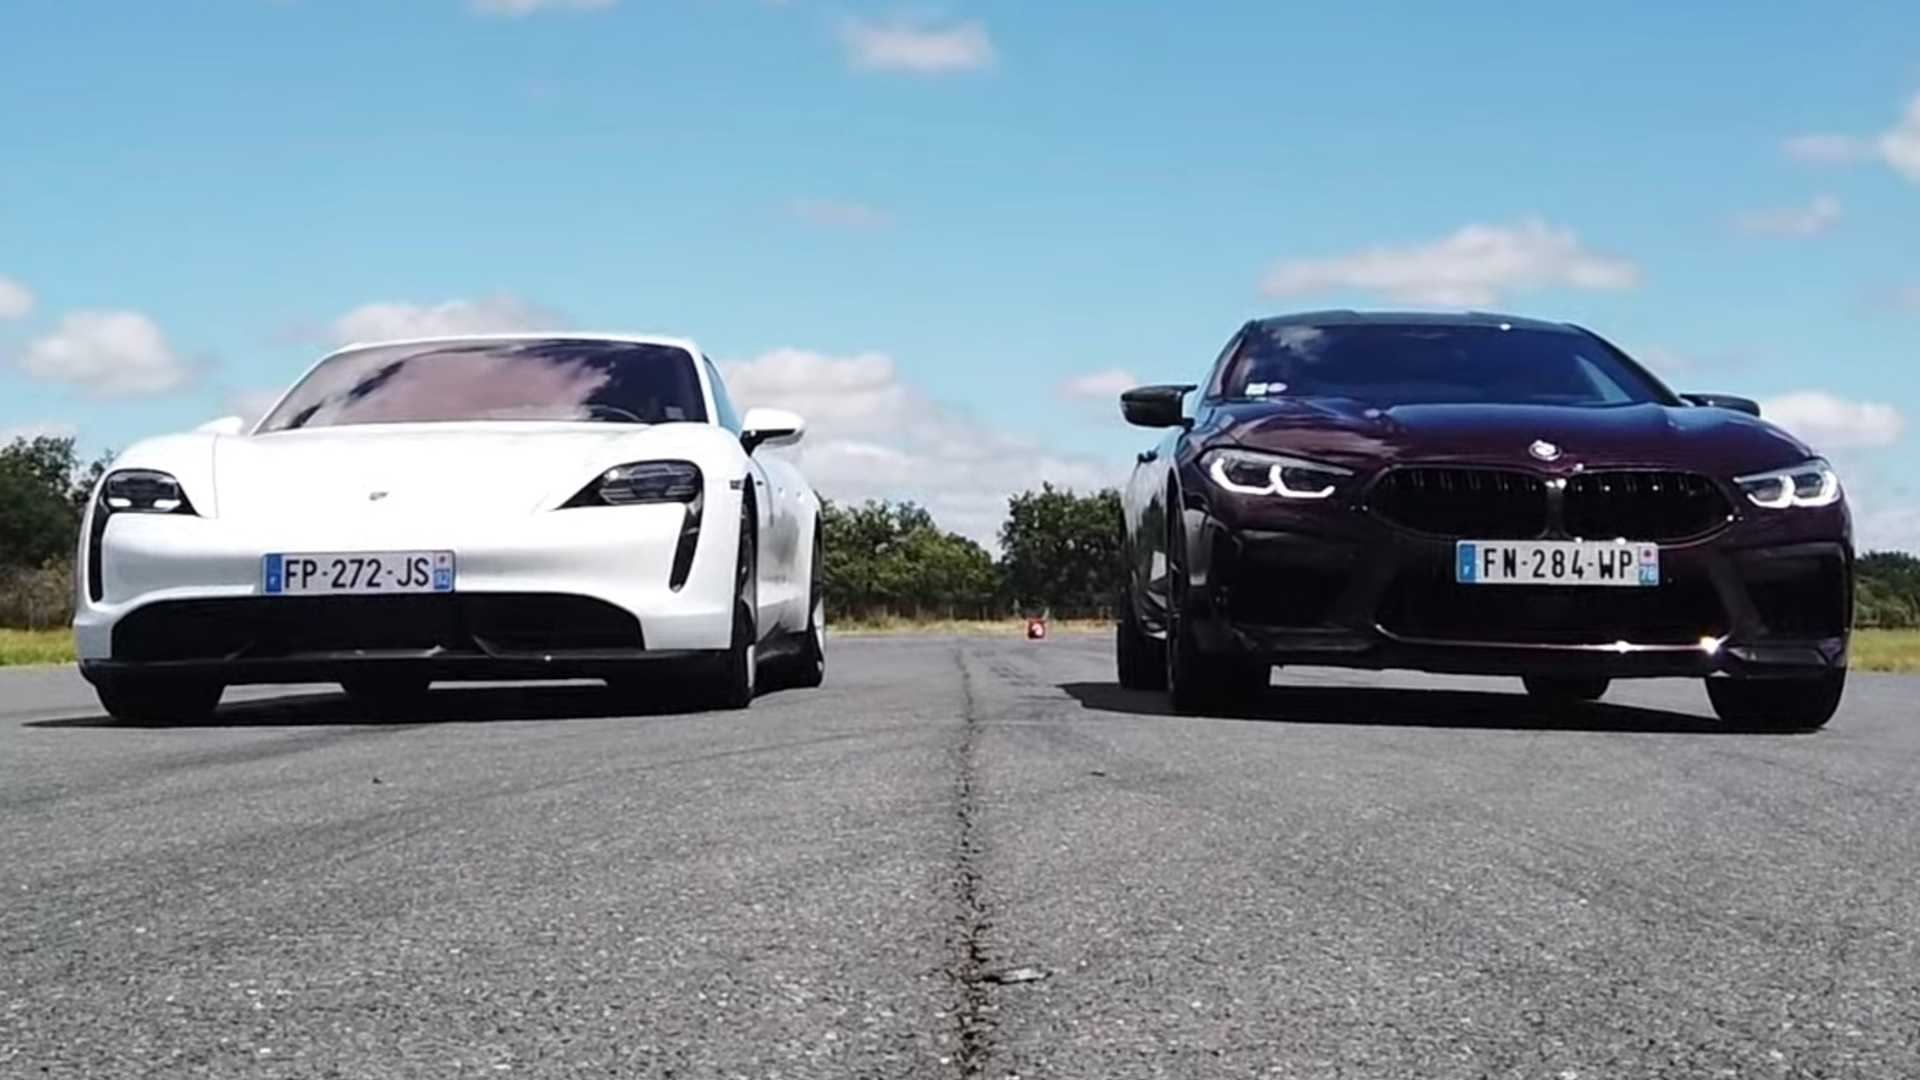 Porsche Taycan Turbo S vs. BMW M8 Gran Coupe